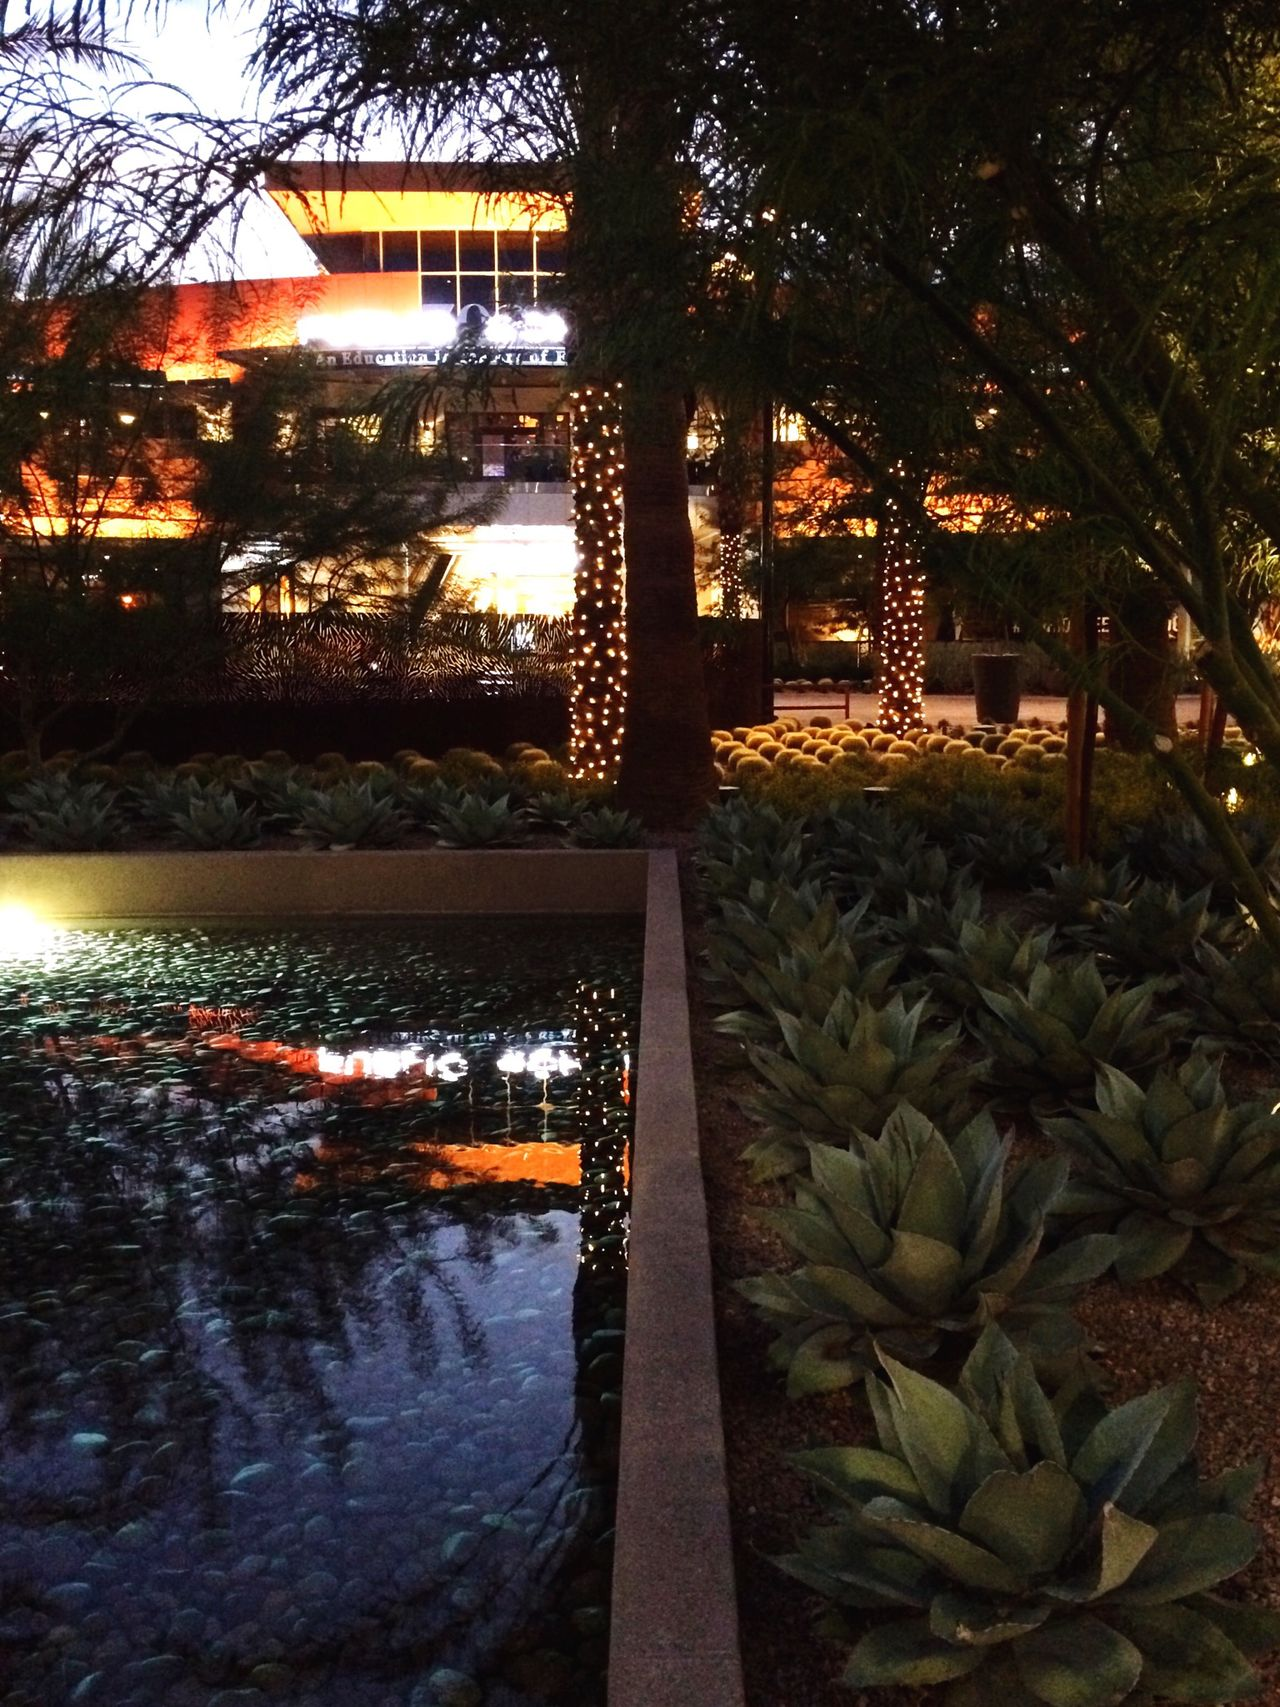 Mall Reflection Lights Urban Landscape Landscaping Pool